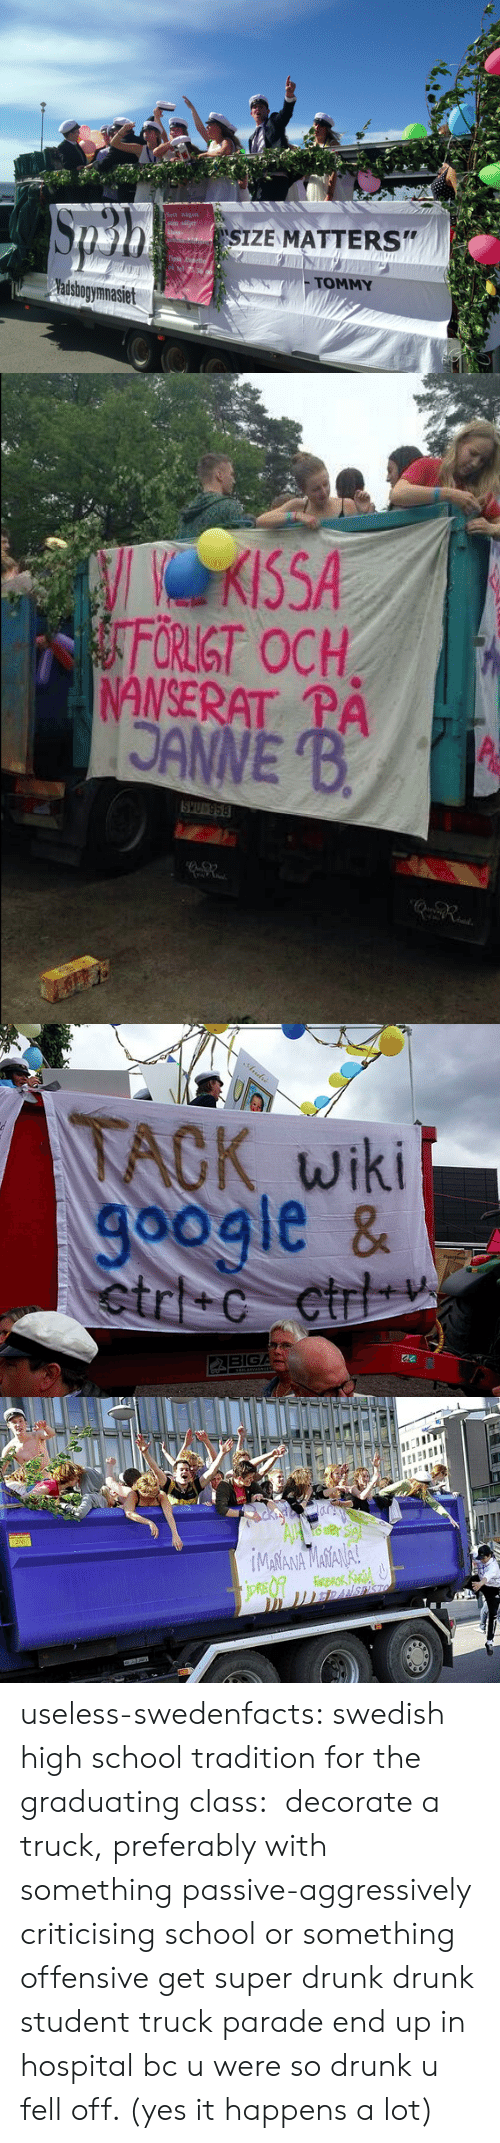 """Drunk, School, and Target: Sett nigon  SIZE MATTERS""""  Pi tel  TOMMY  adsbogymnasiet   ACK, wiki  oogle &  BIGA  au useless-swedenfacts:  swedish high school tradition for the graduating class: decorate a truck, preferably with something passive-aggressively criticising school or something offensive get super drunk drunk student truck parade end up in hospital bc u were so drunk u fell off. (yes it happens a lot)"""